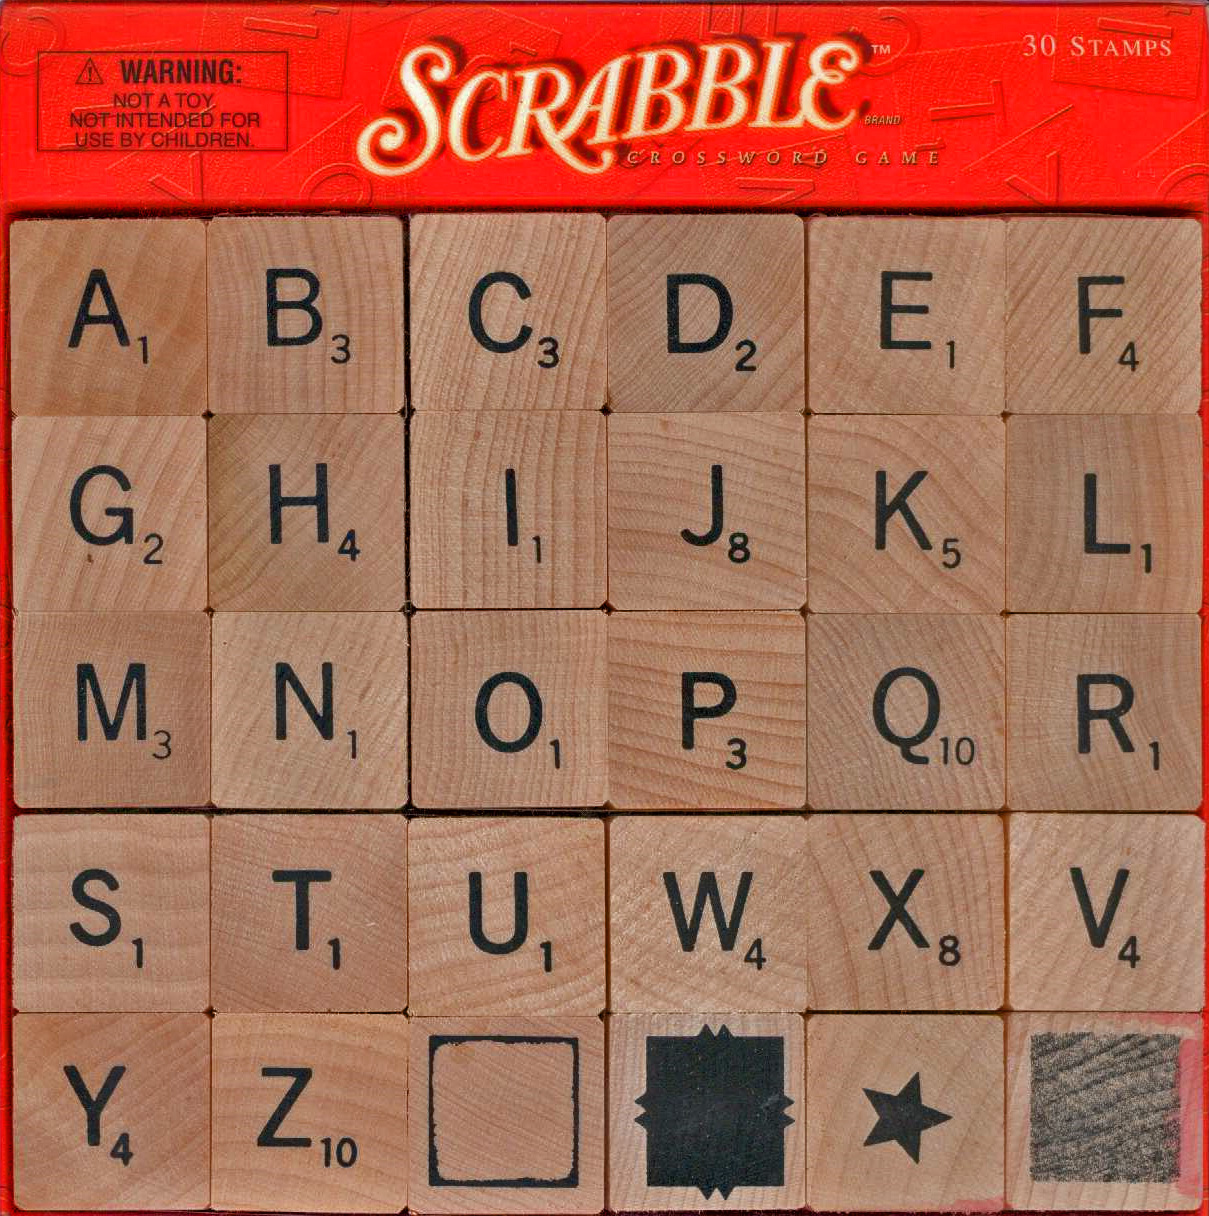 Scrabble letter distributions  Wikipedia